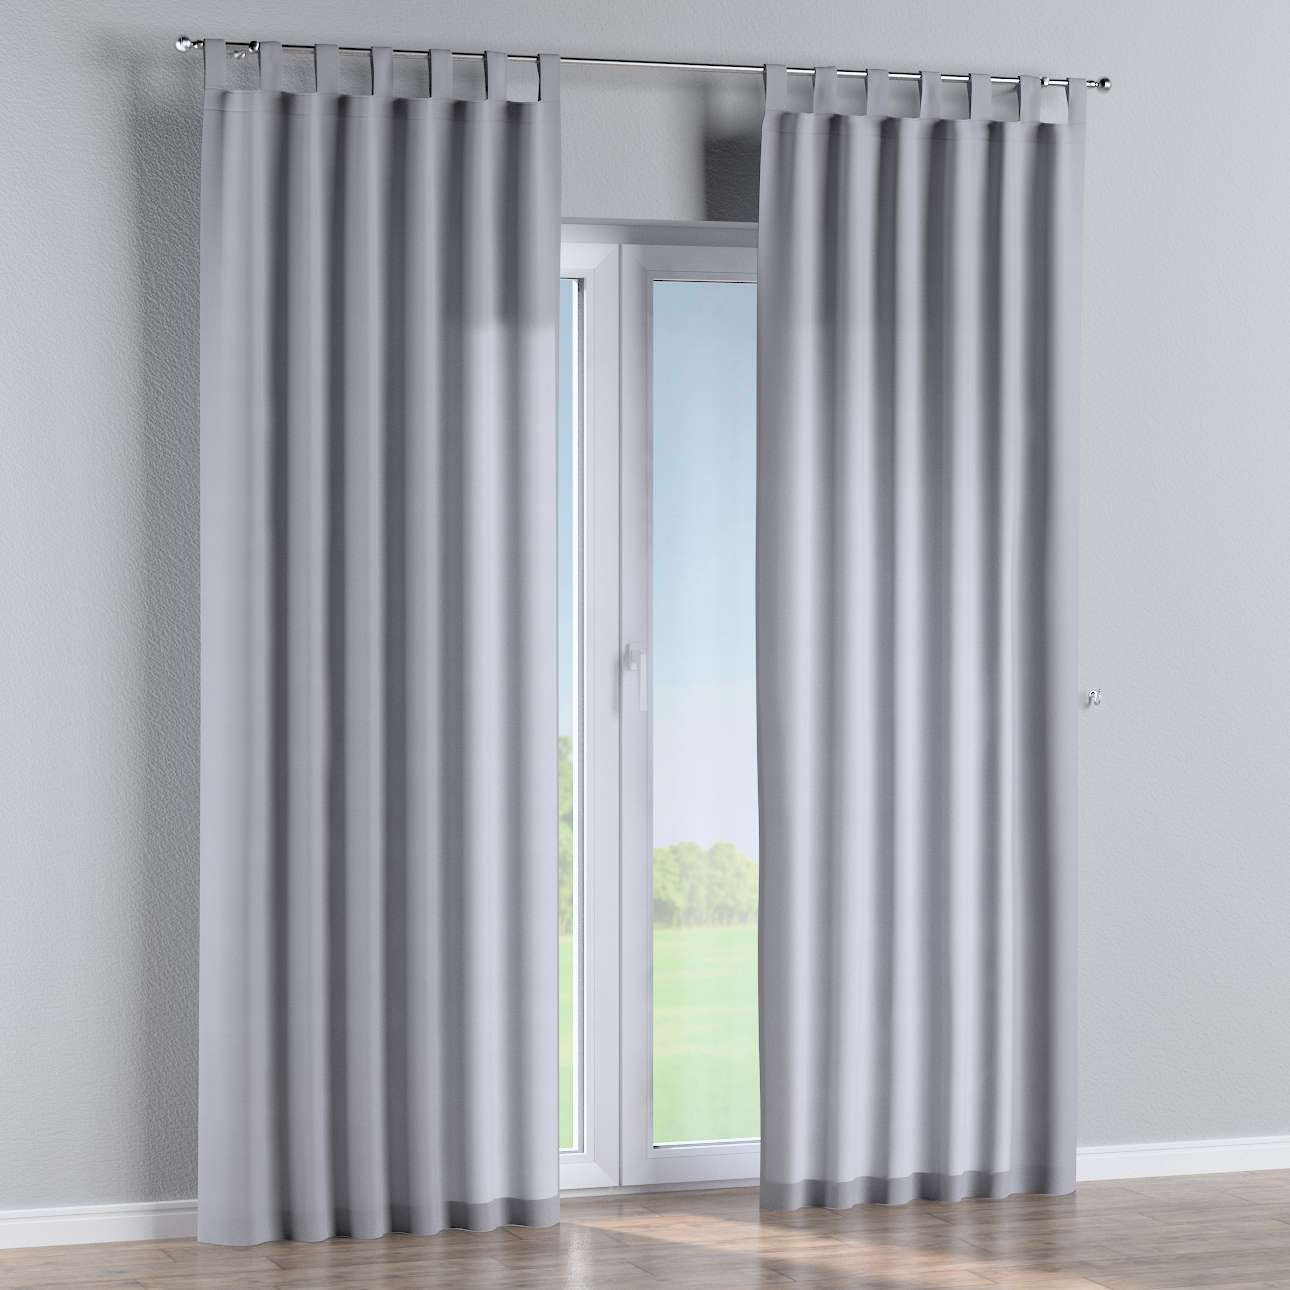 Tab top curtains in collection Jupiter, fabric: 127-92